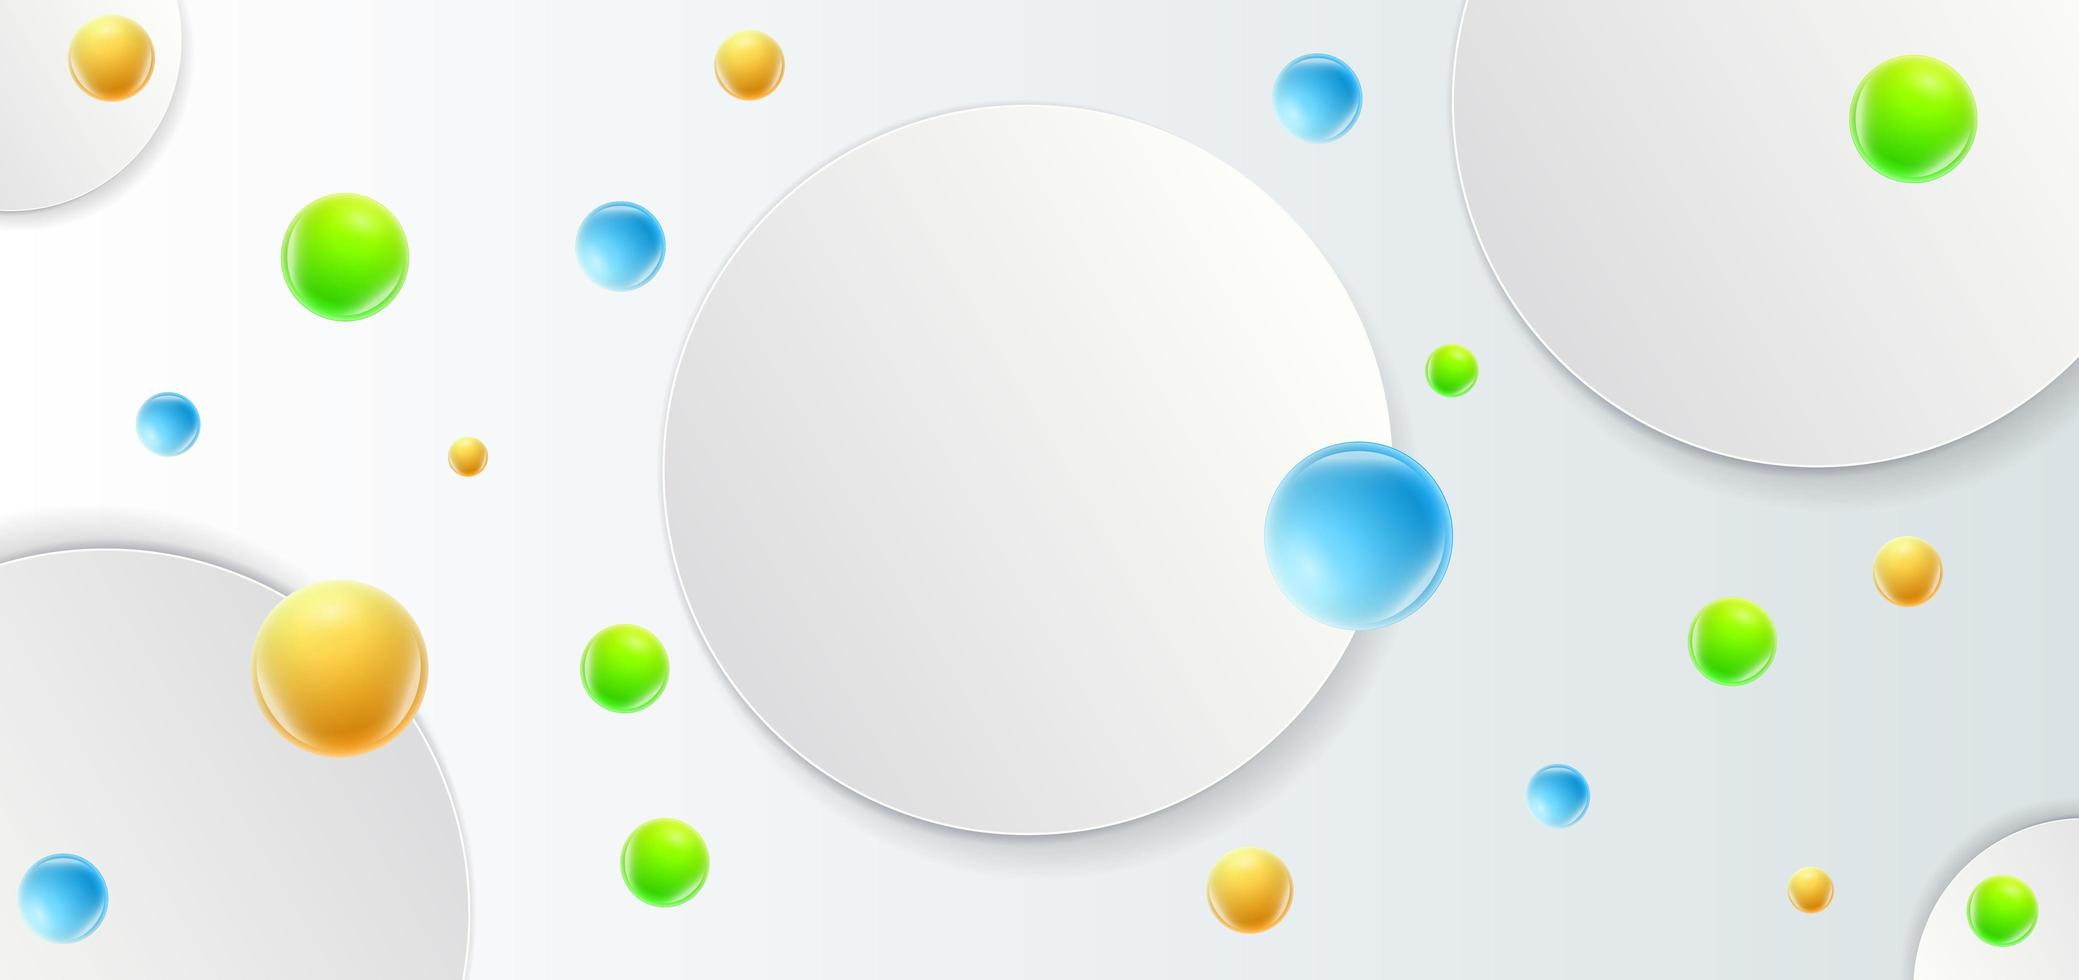 Abstract template with circles vector